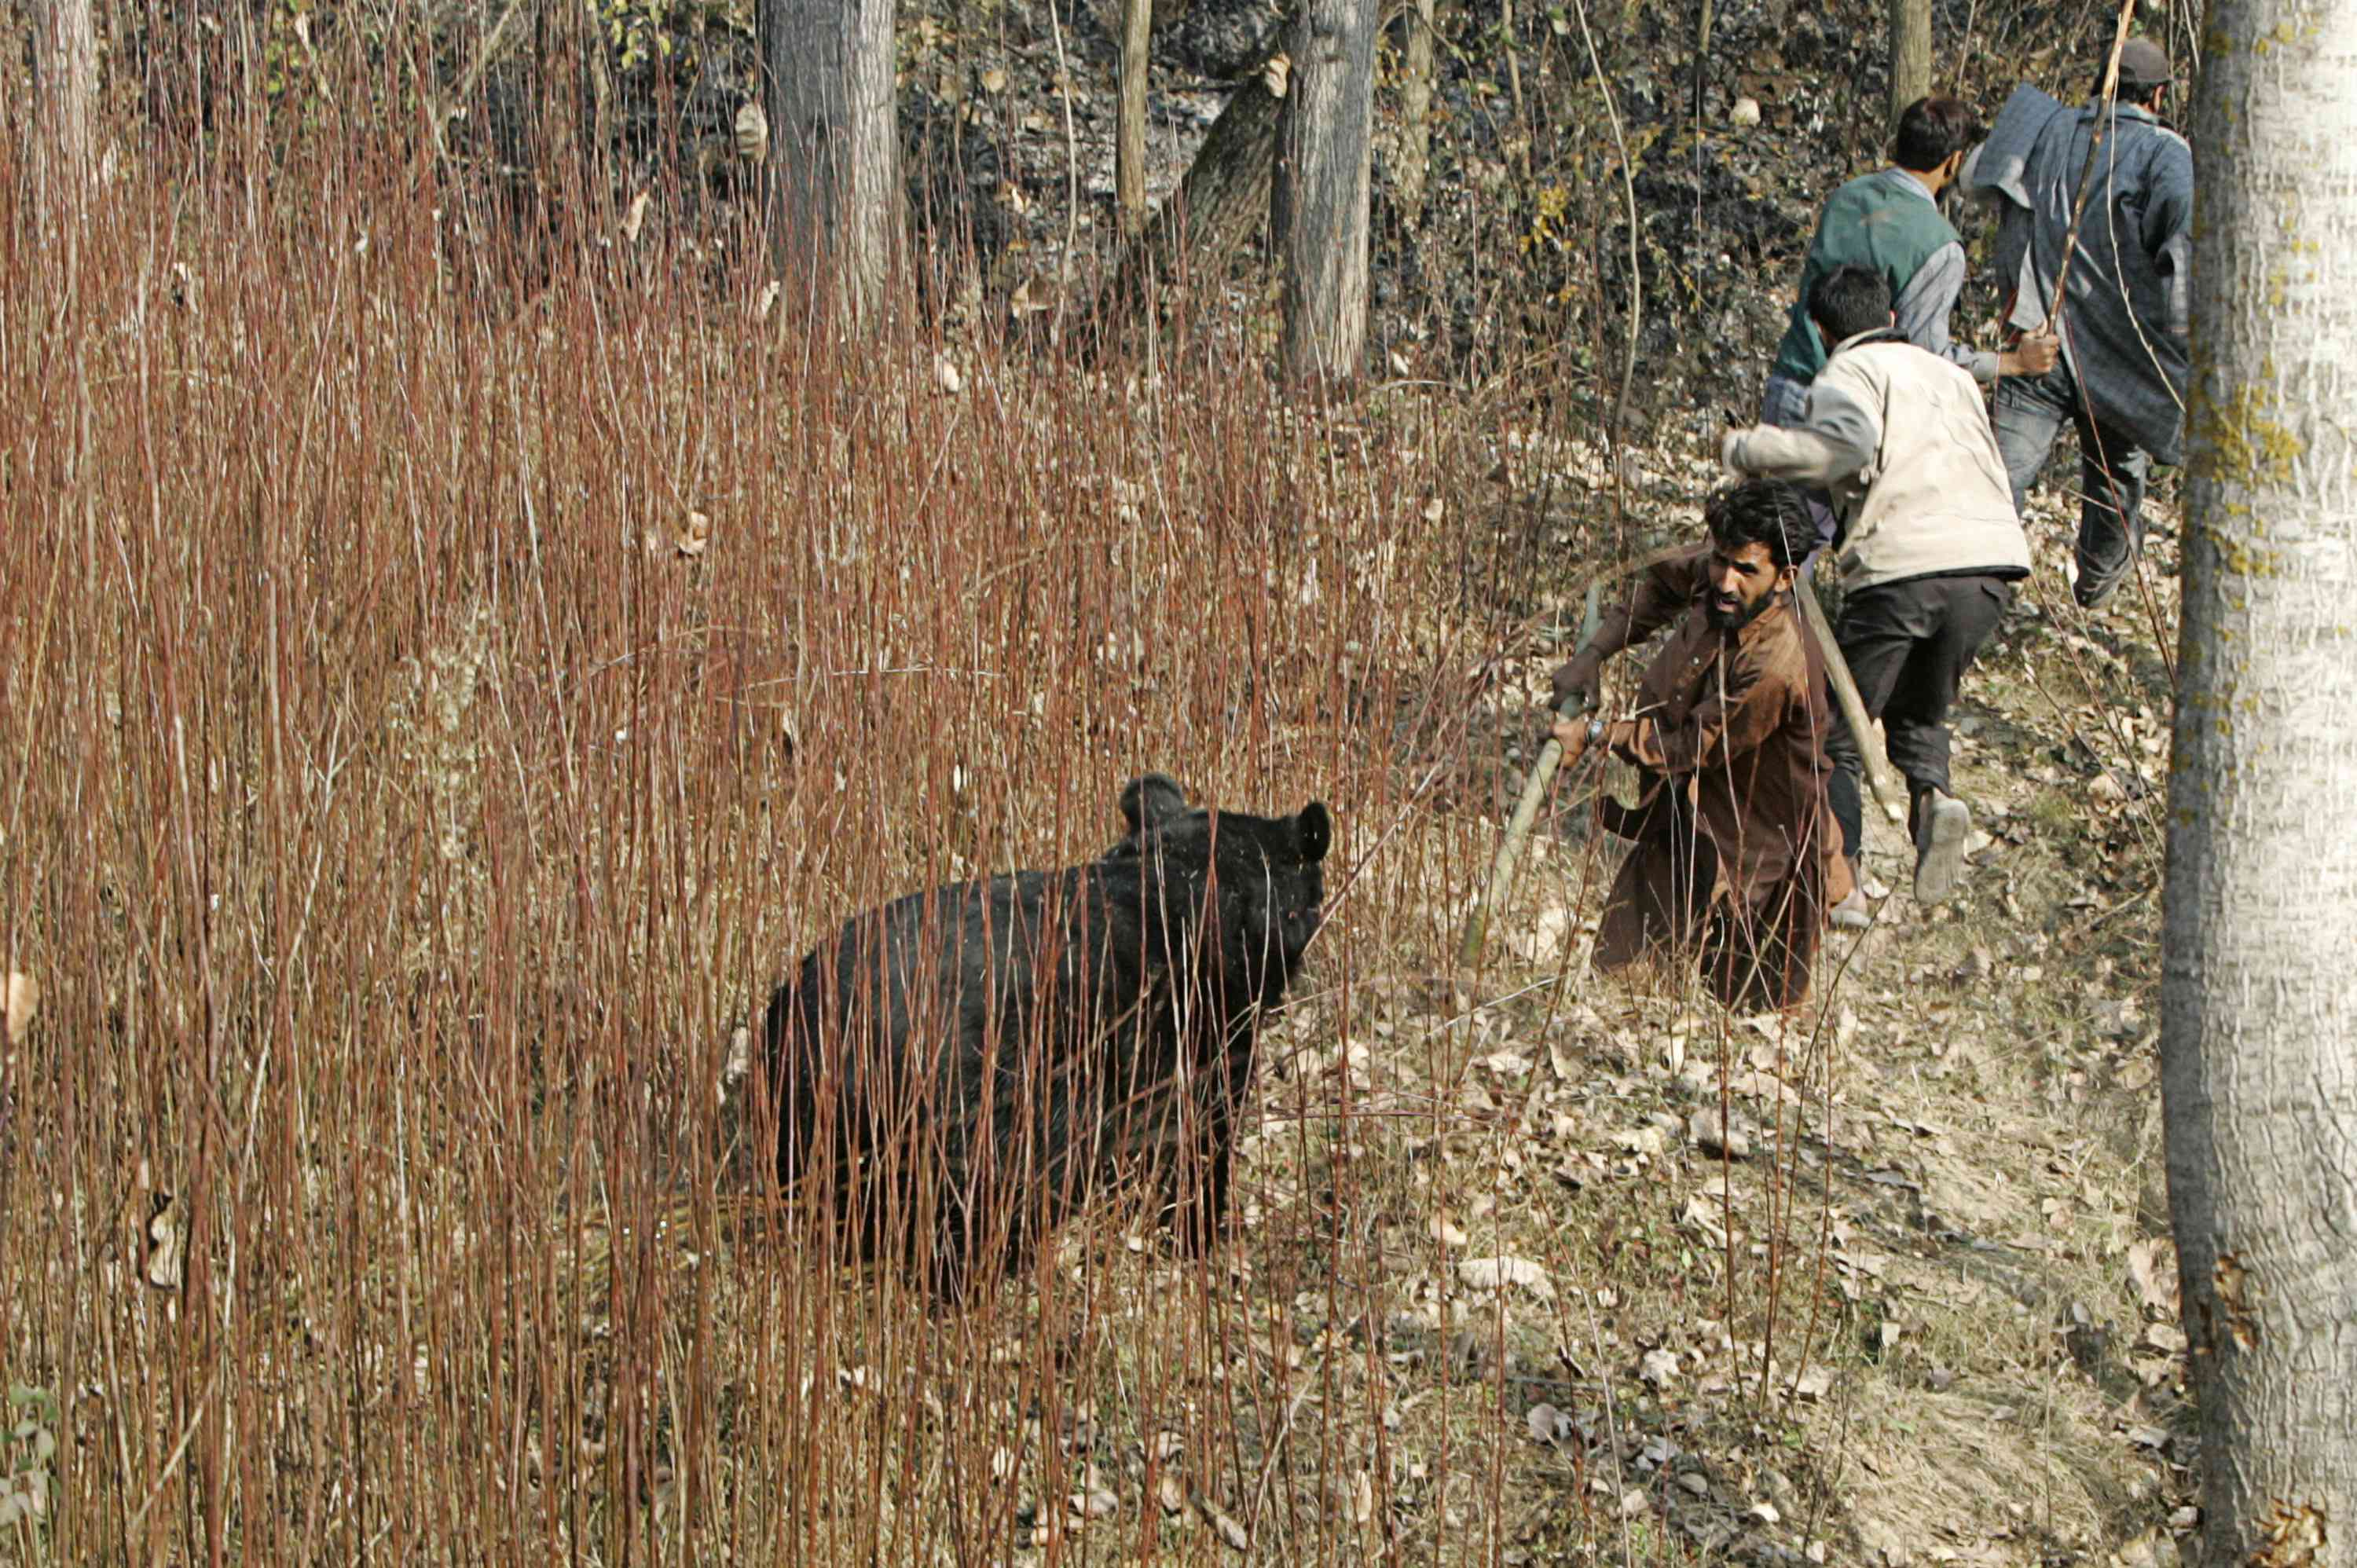 An Asiatic black bear is confronted by a local villager, who was with a group of men hunting the bear, near the village of Gasoo on the outskirts of Srinagar in November 2007. (Photo credit: Reuters/Danish Ismail).